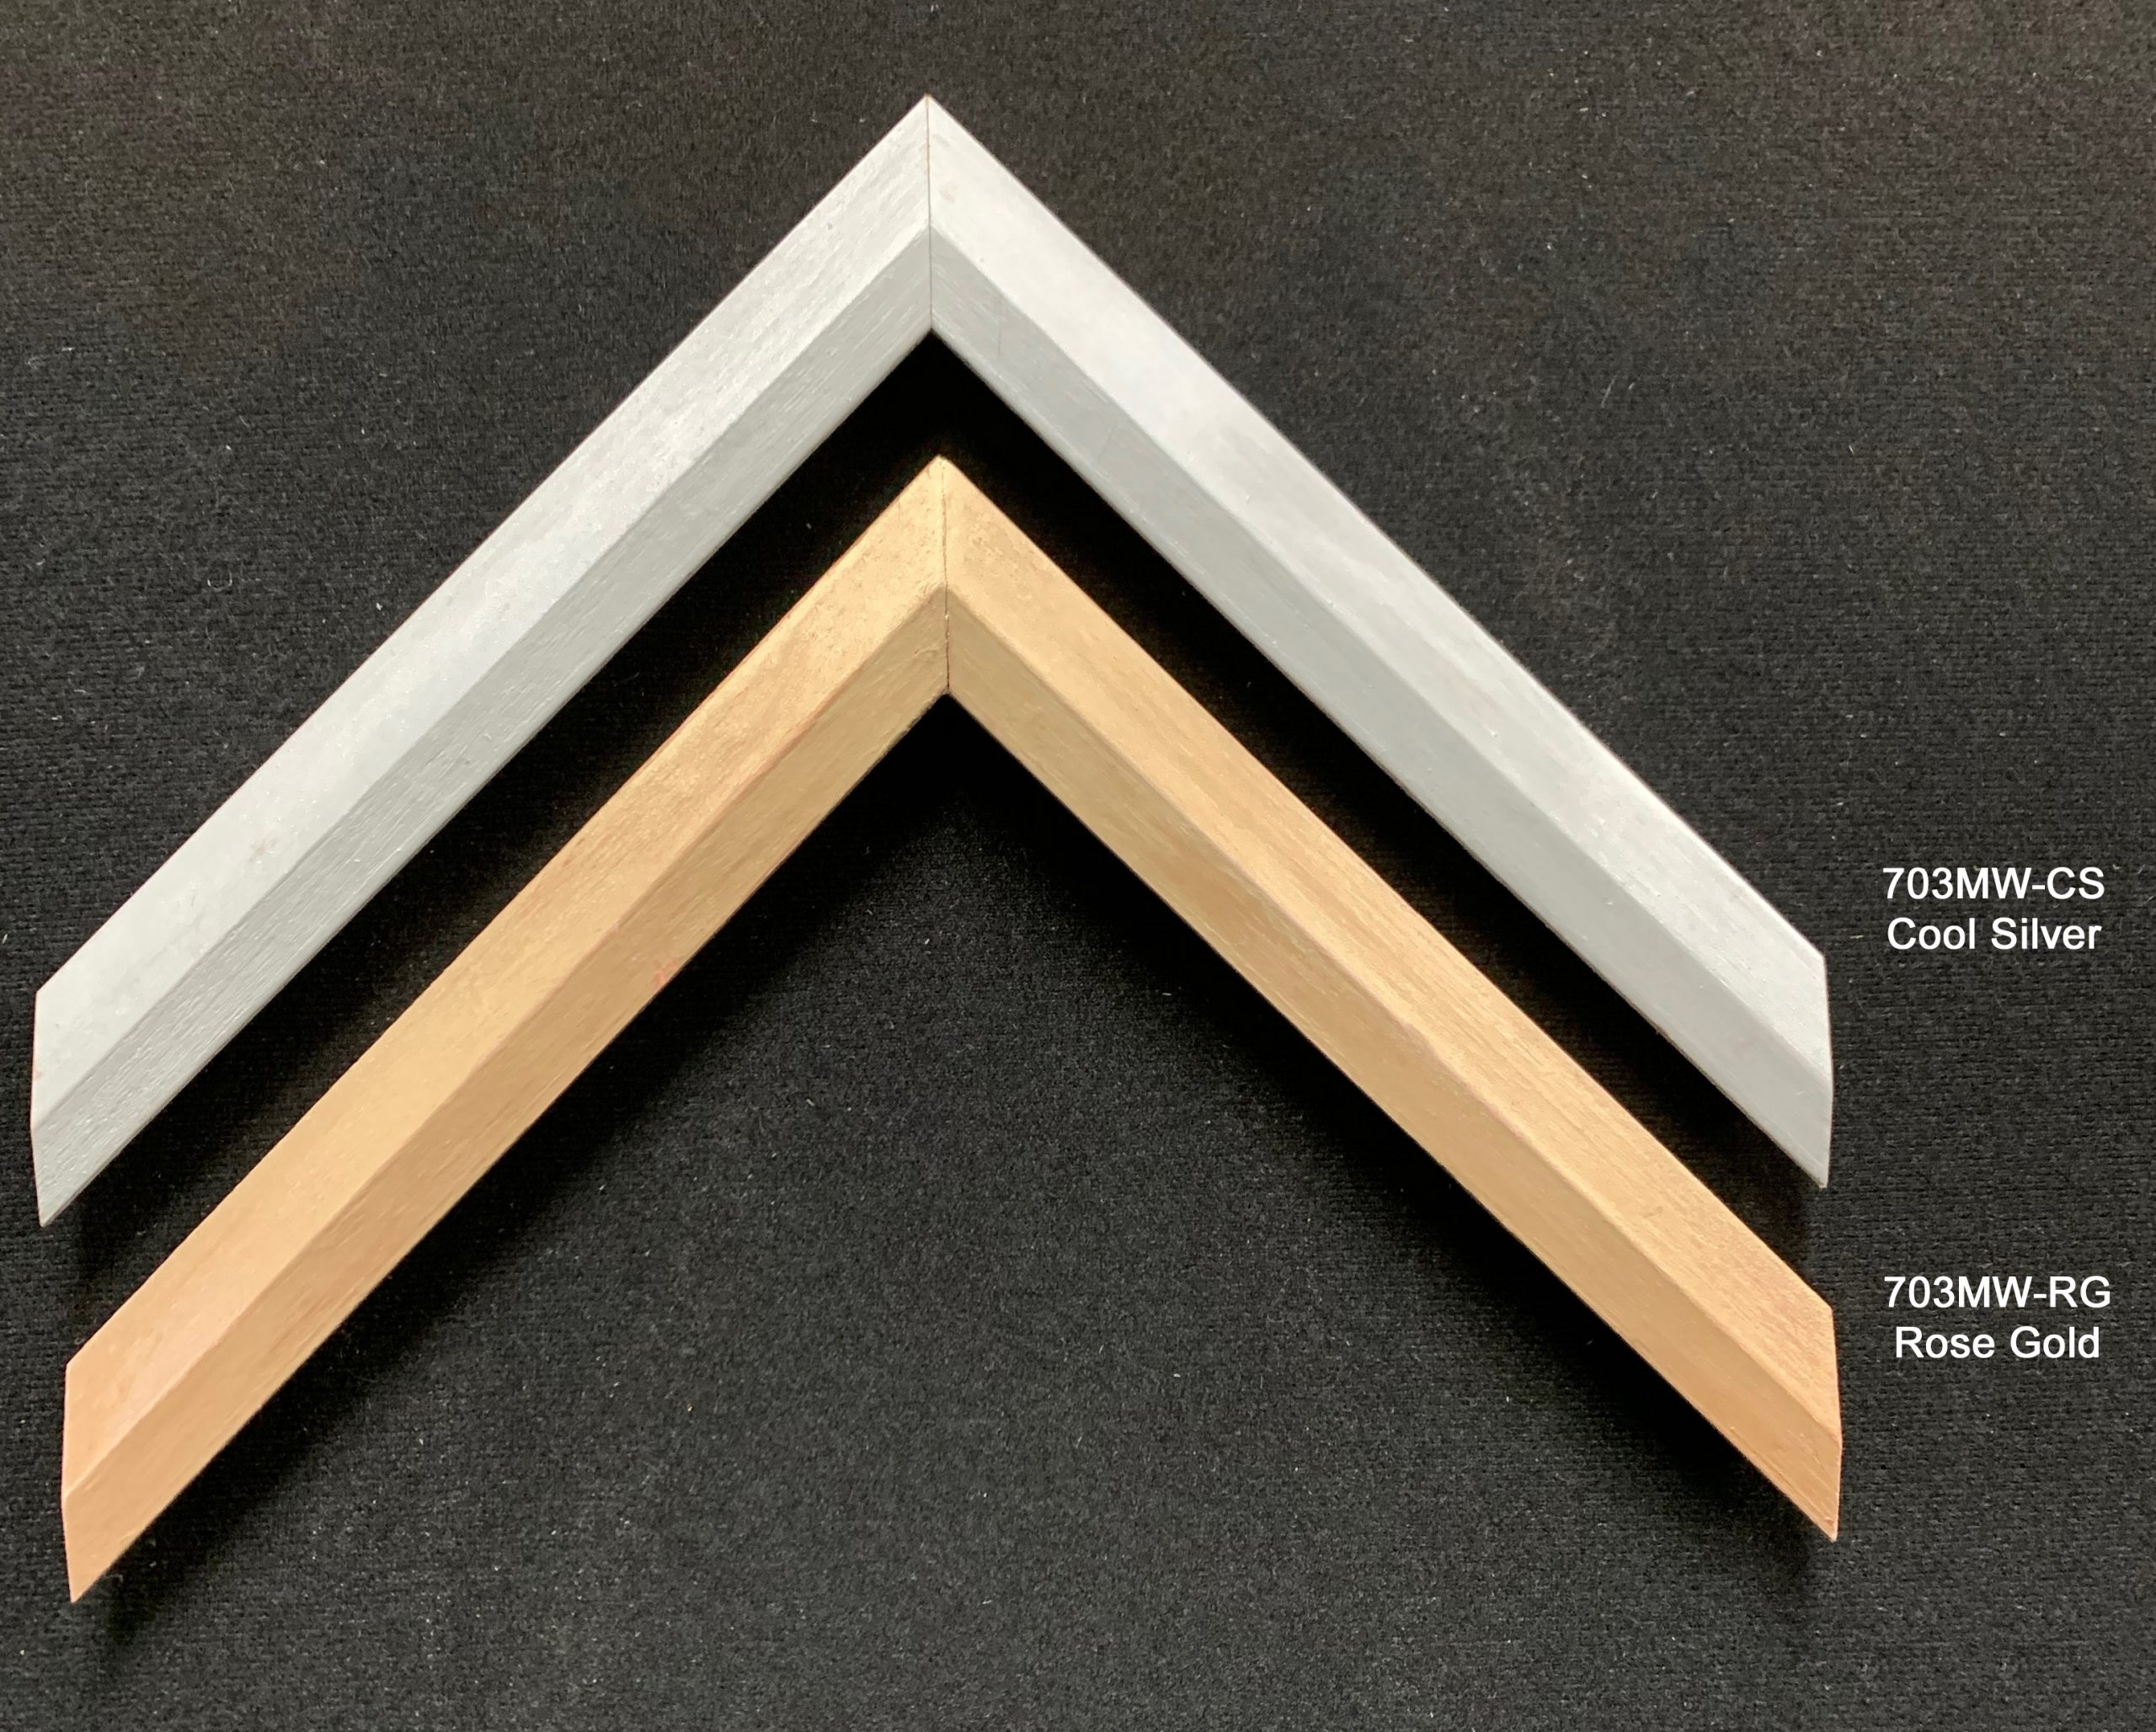 Wood moulding painted with a sleek metallic finish